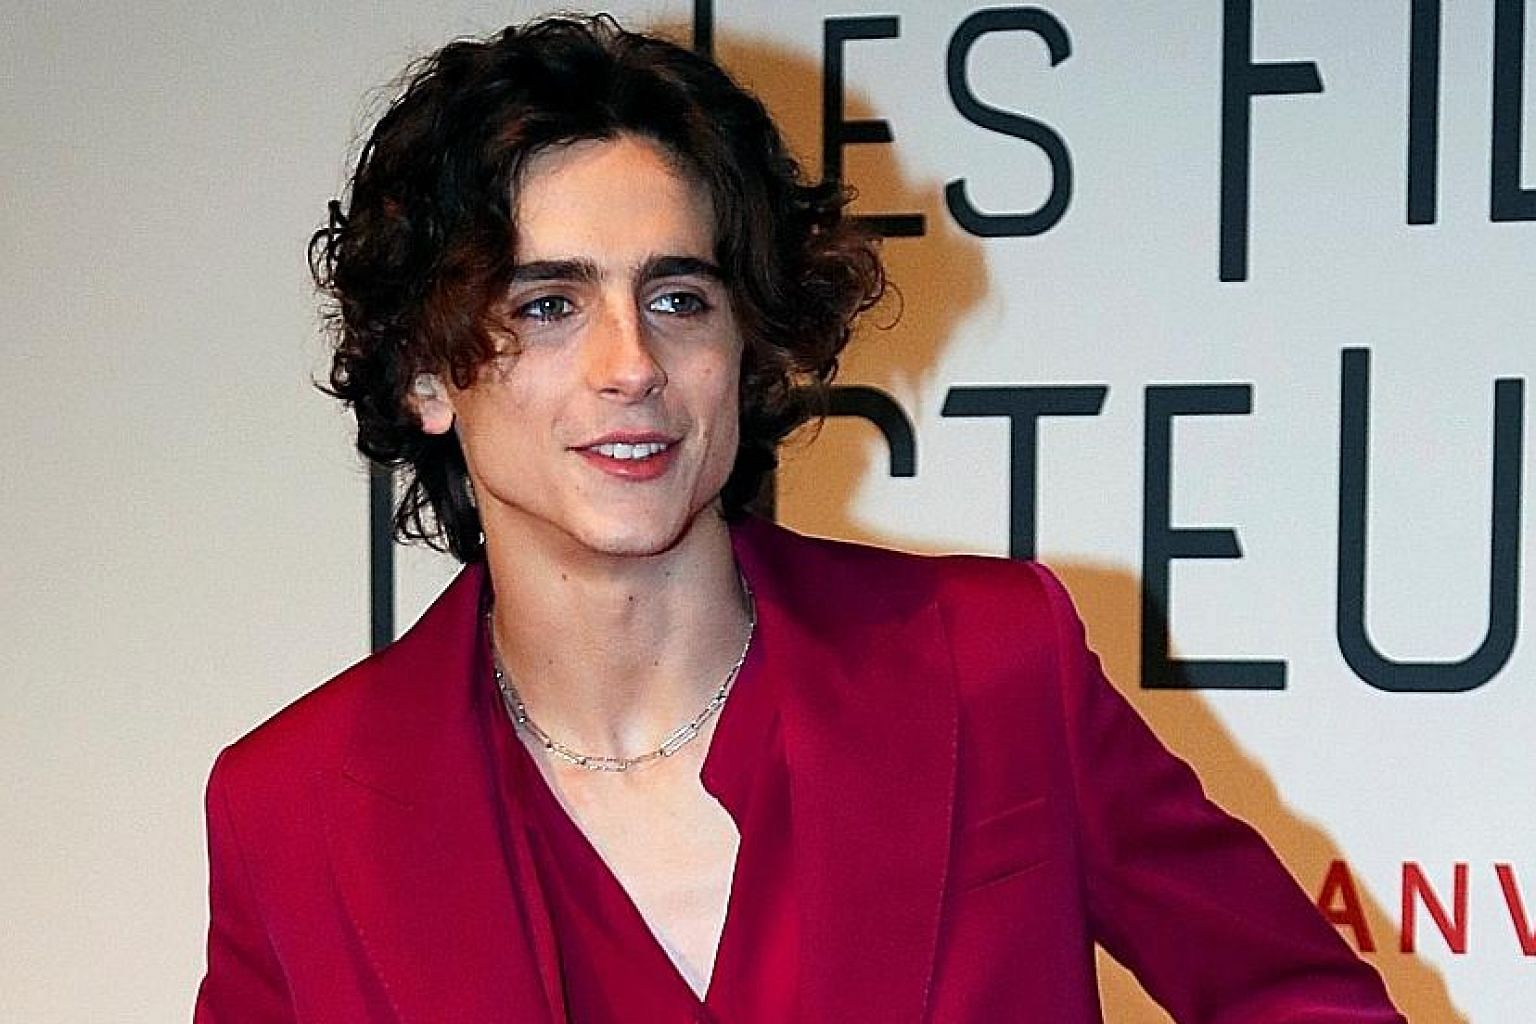 Timothee Chalamet, who stars in Little Women, can easily be mistaken for one of the sisters and that is his allure.